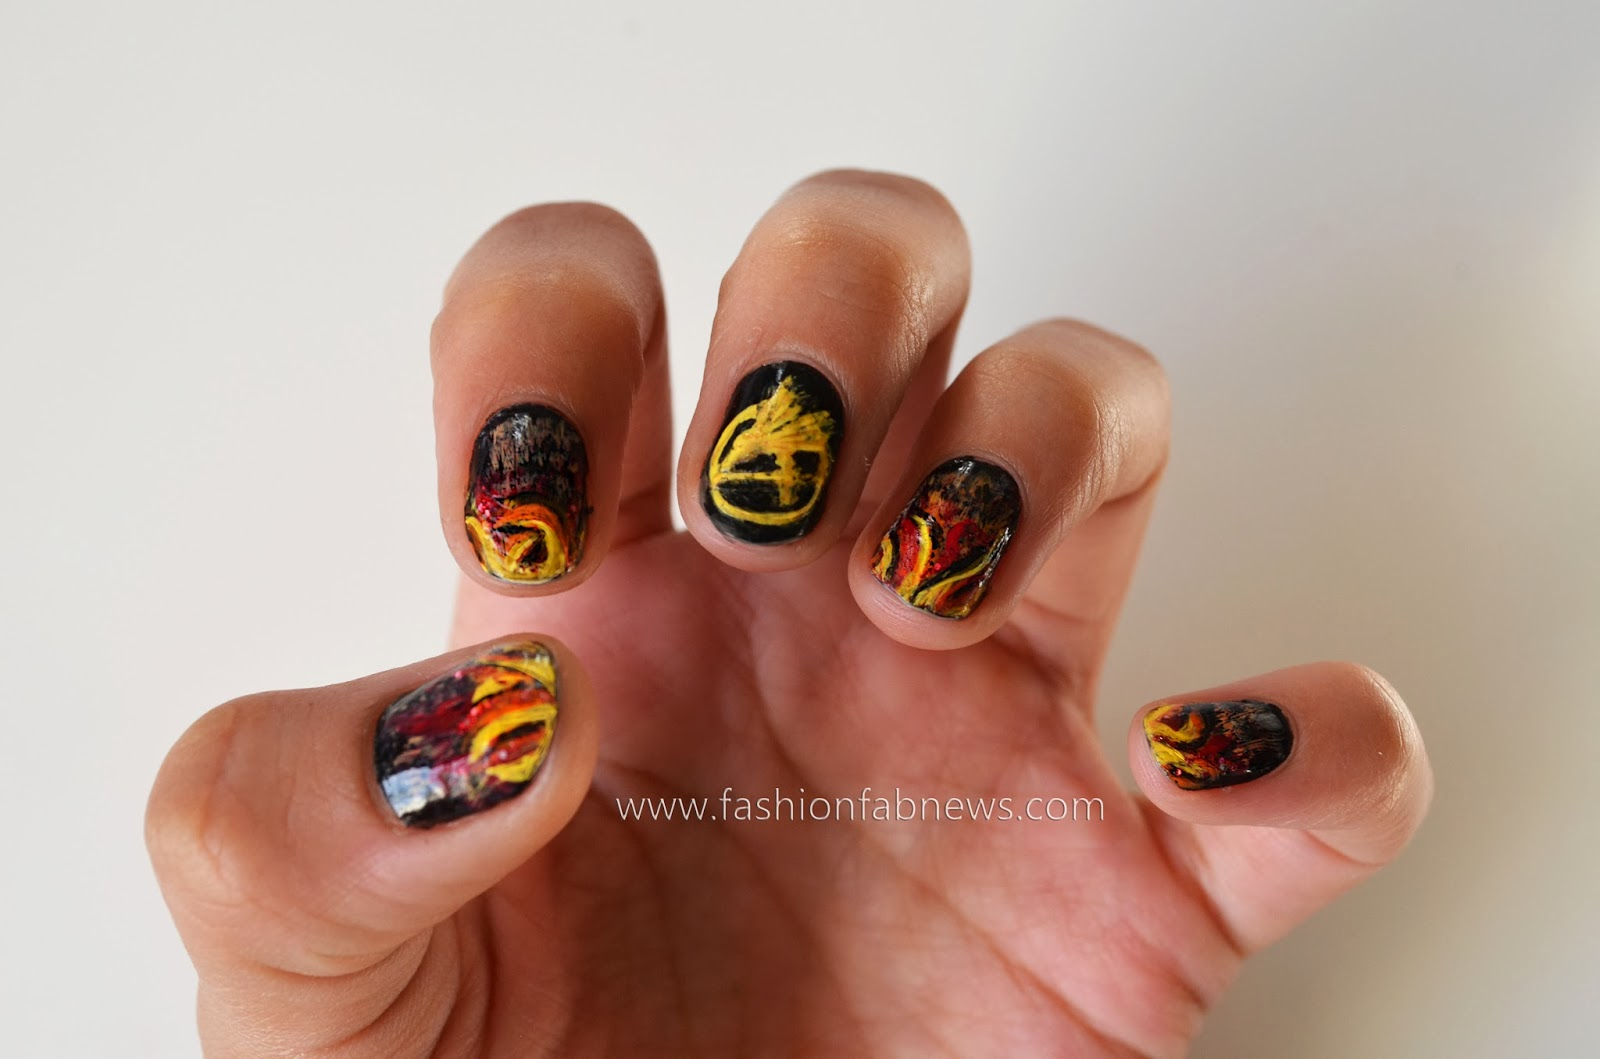 Fashion fab news fashion beauty celebrities designers 2013 hunger games nail art catching fire solutioingenieria Gallery